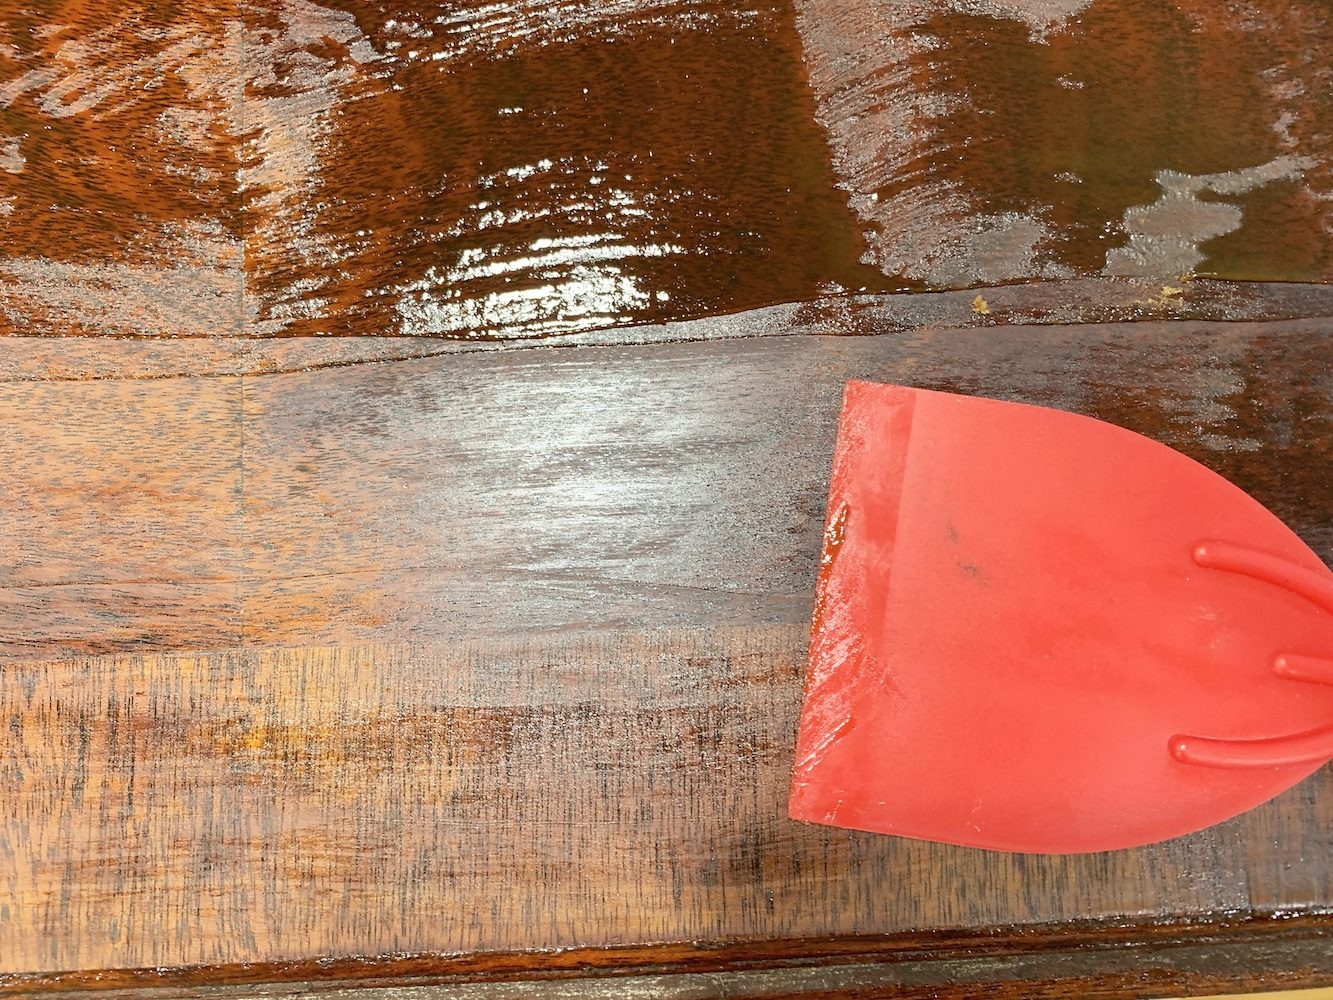 Prepare Table for Refinishing - Remove the Stripper and Varnish #DIY #DIYFurnitureStripping #FurnitureRefinish #VarnishStripping